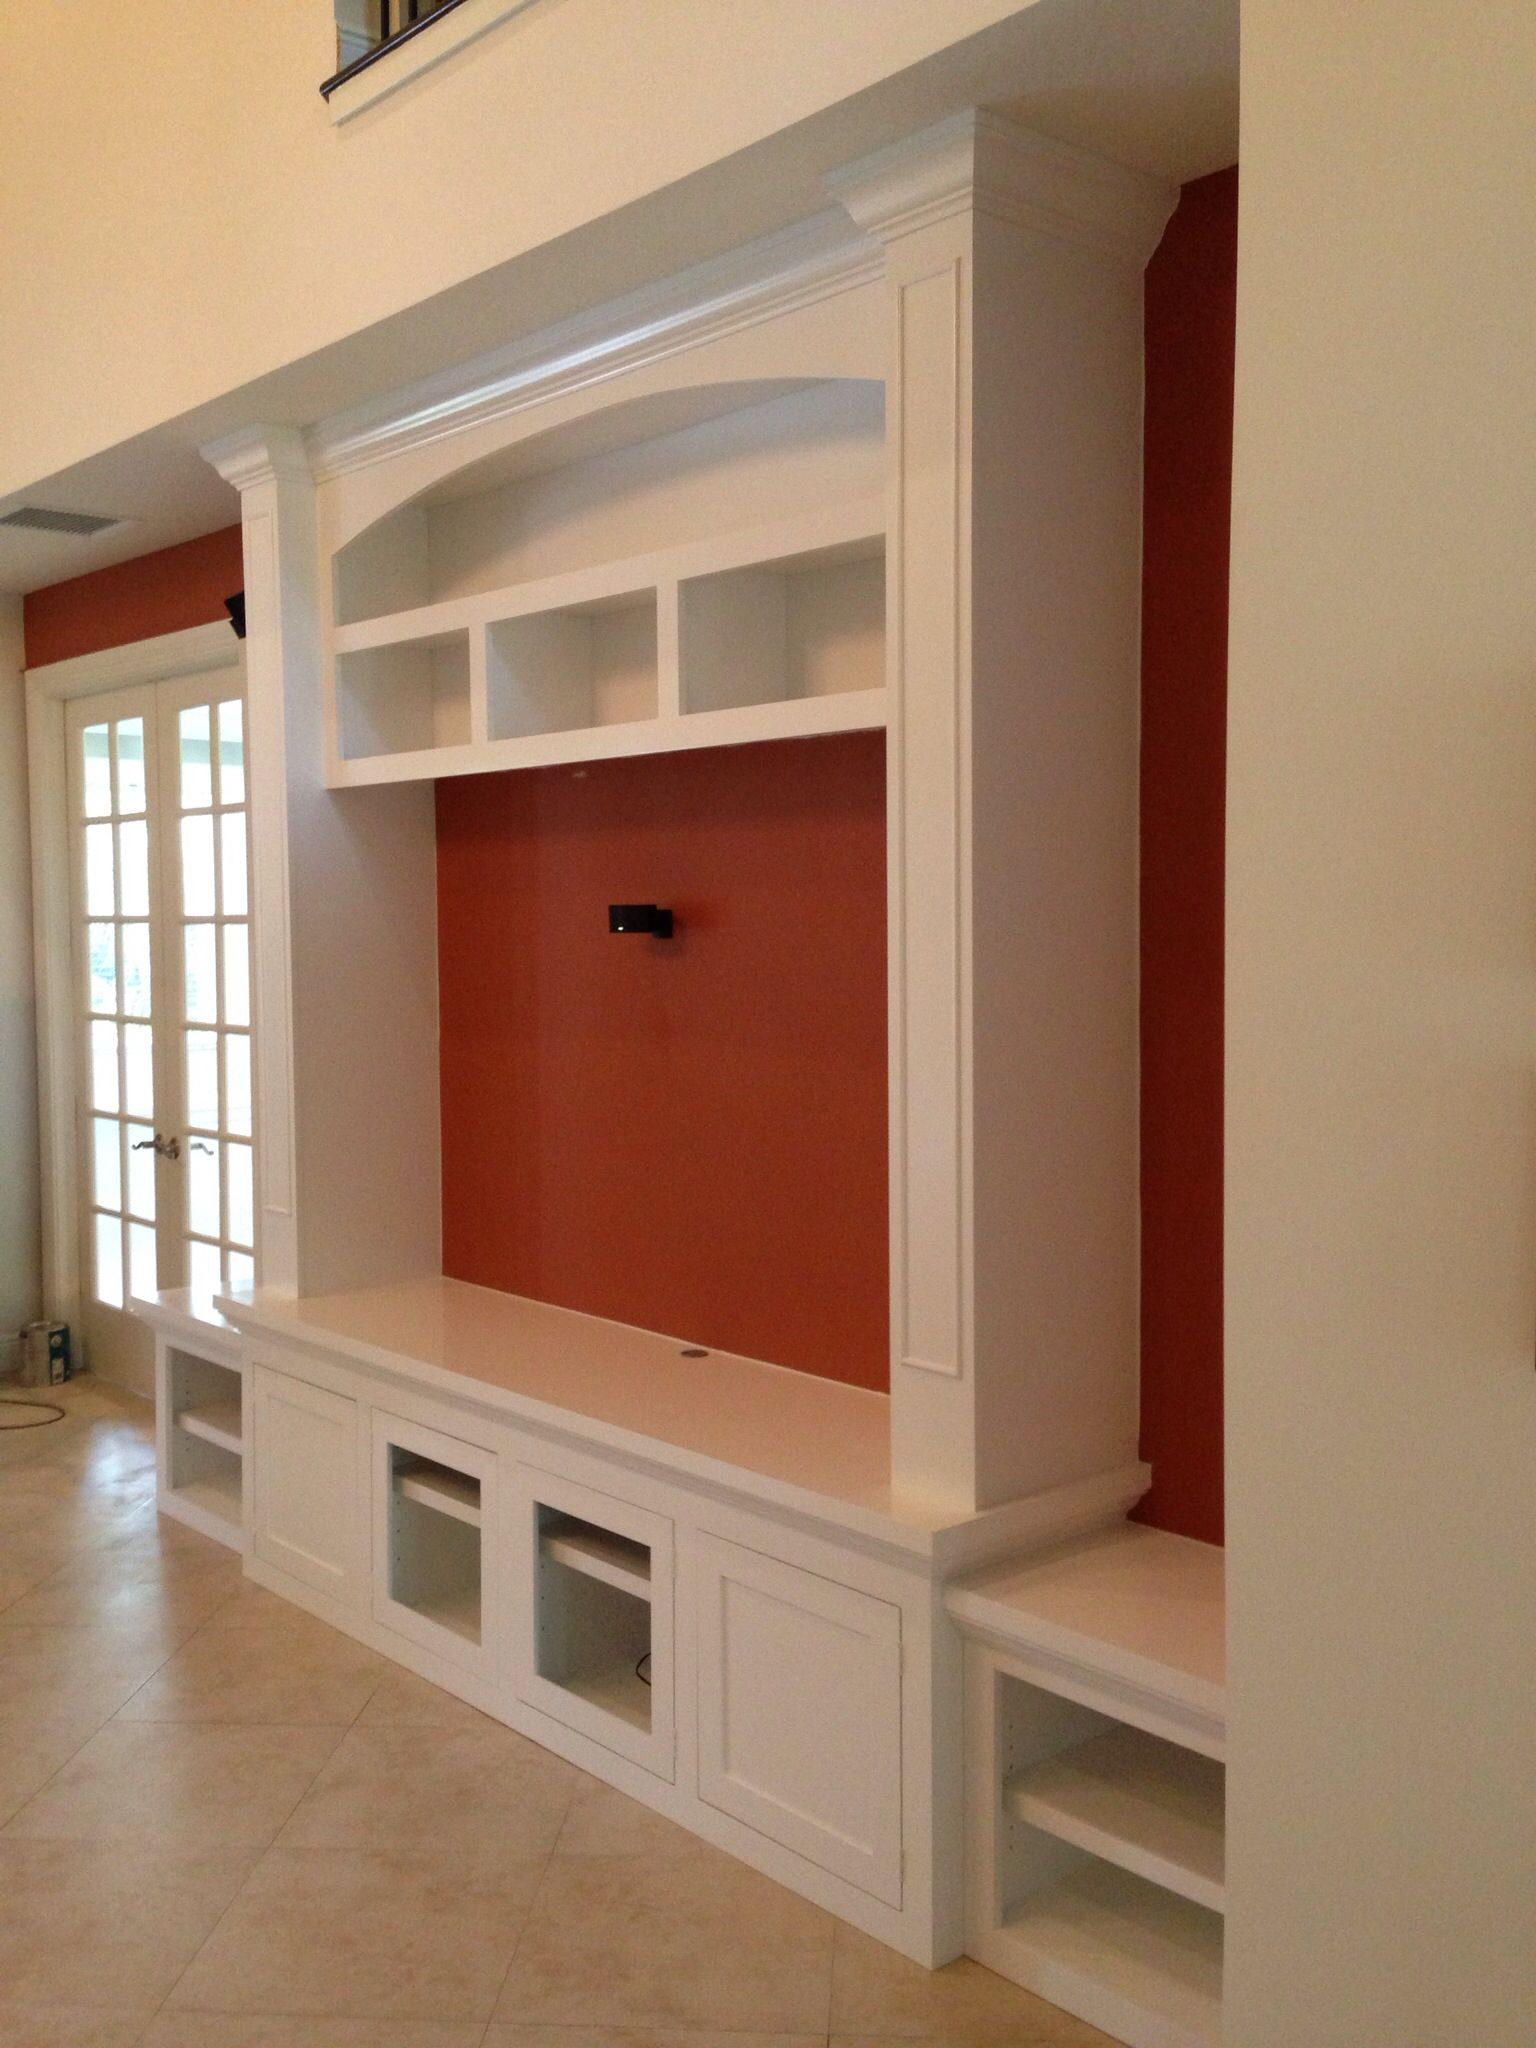 Latest Tv Unit Design: Entertainment Center, Built-in